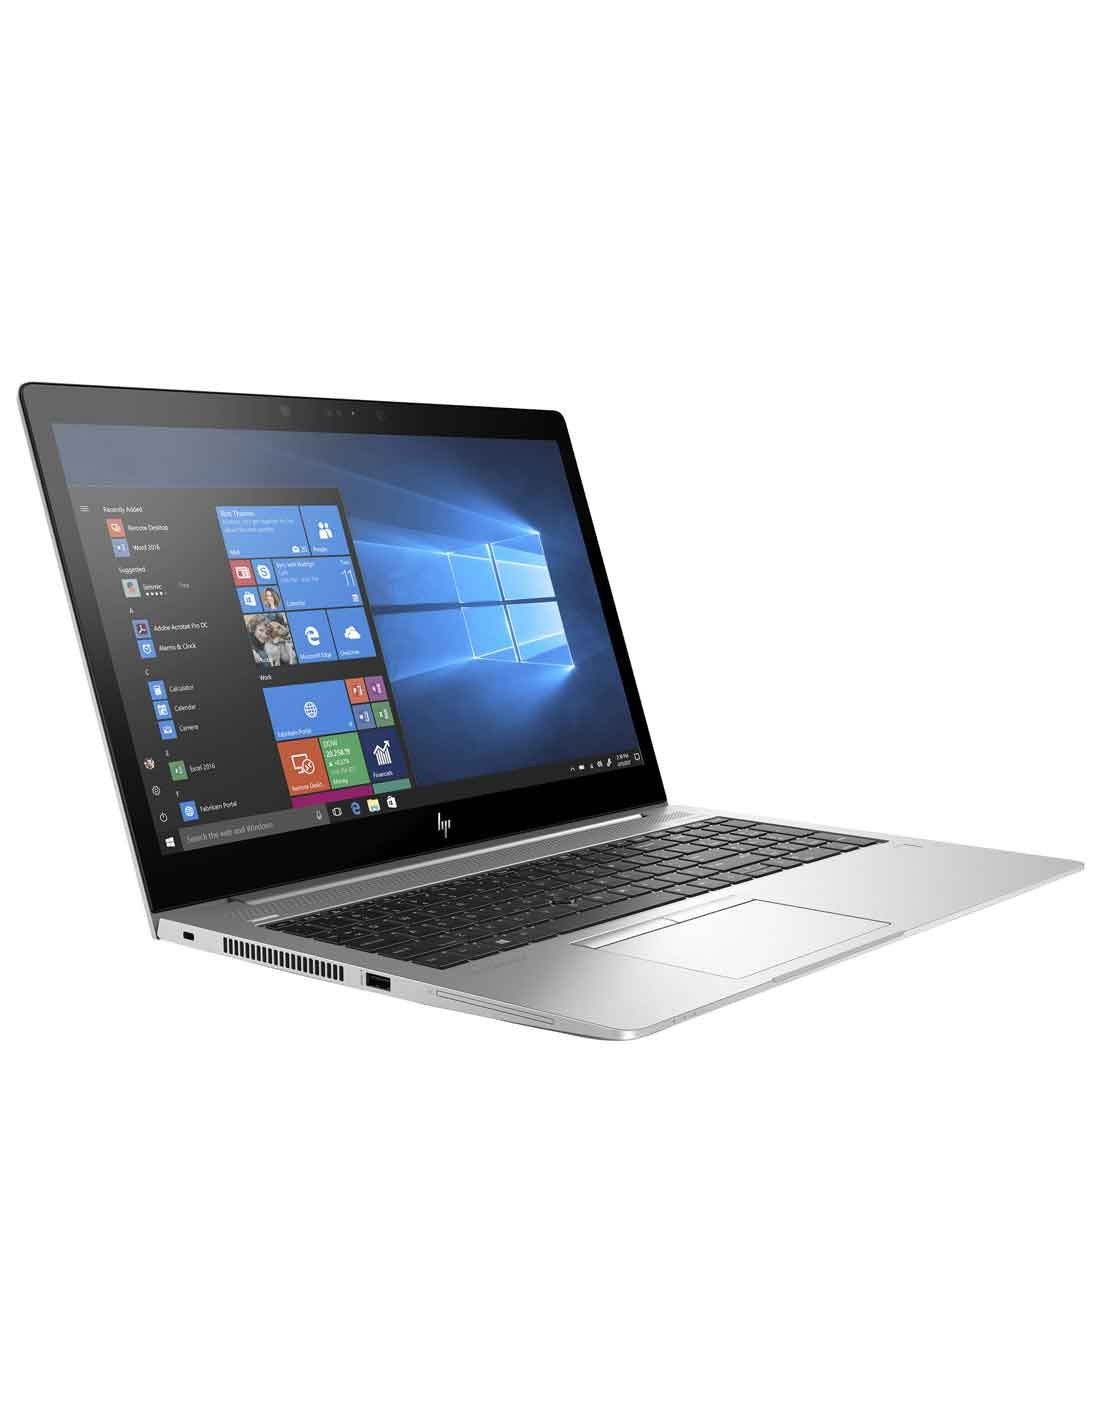 HP EliteBook 850 G5 Notebook at the cheapest price and fast free delivery in Dubai